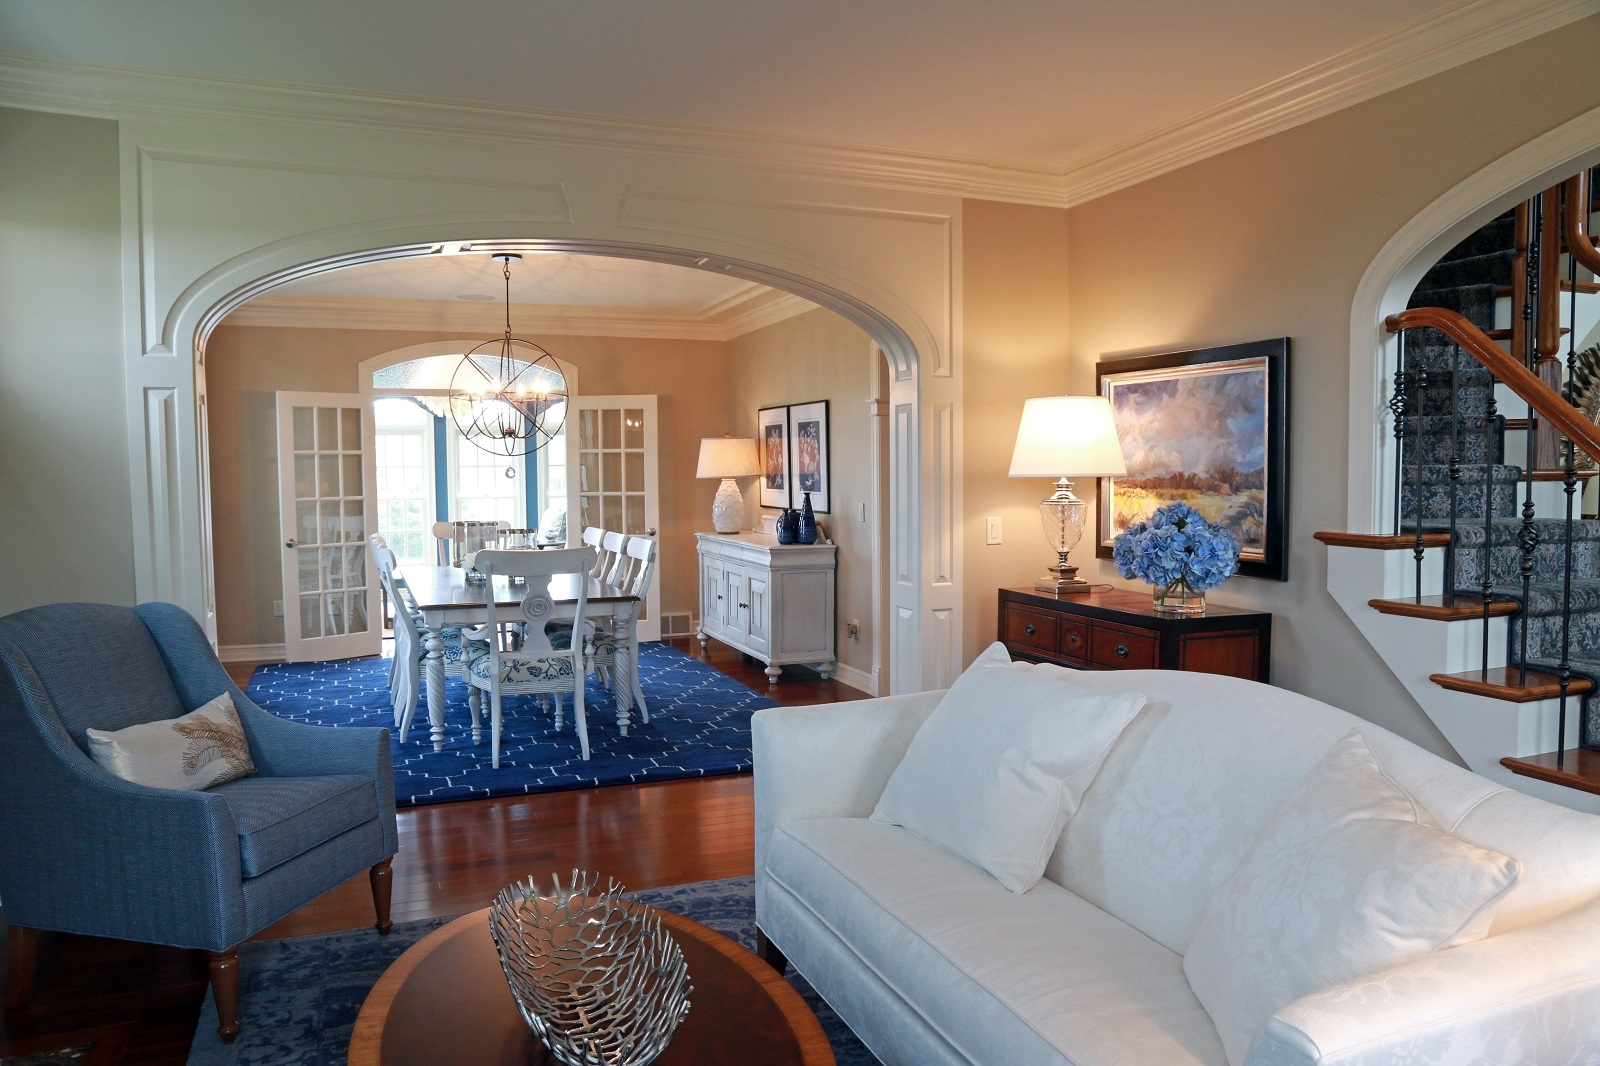 Rex and Michelle Ryan's Western New York home was designed by Peter Balistreri for Ethan Allen, using Ethan Allen furniture. (Dave Jarosz/Buffalo Magazine)